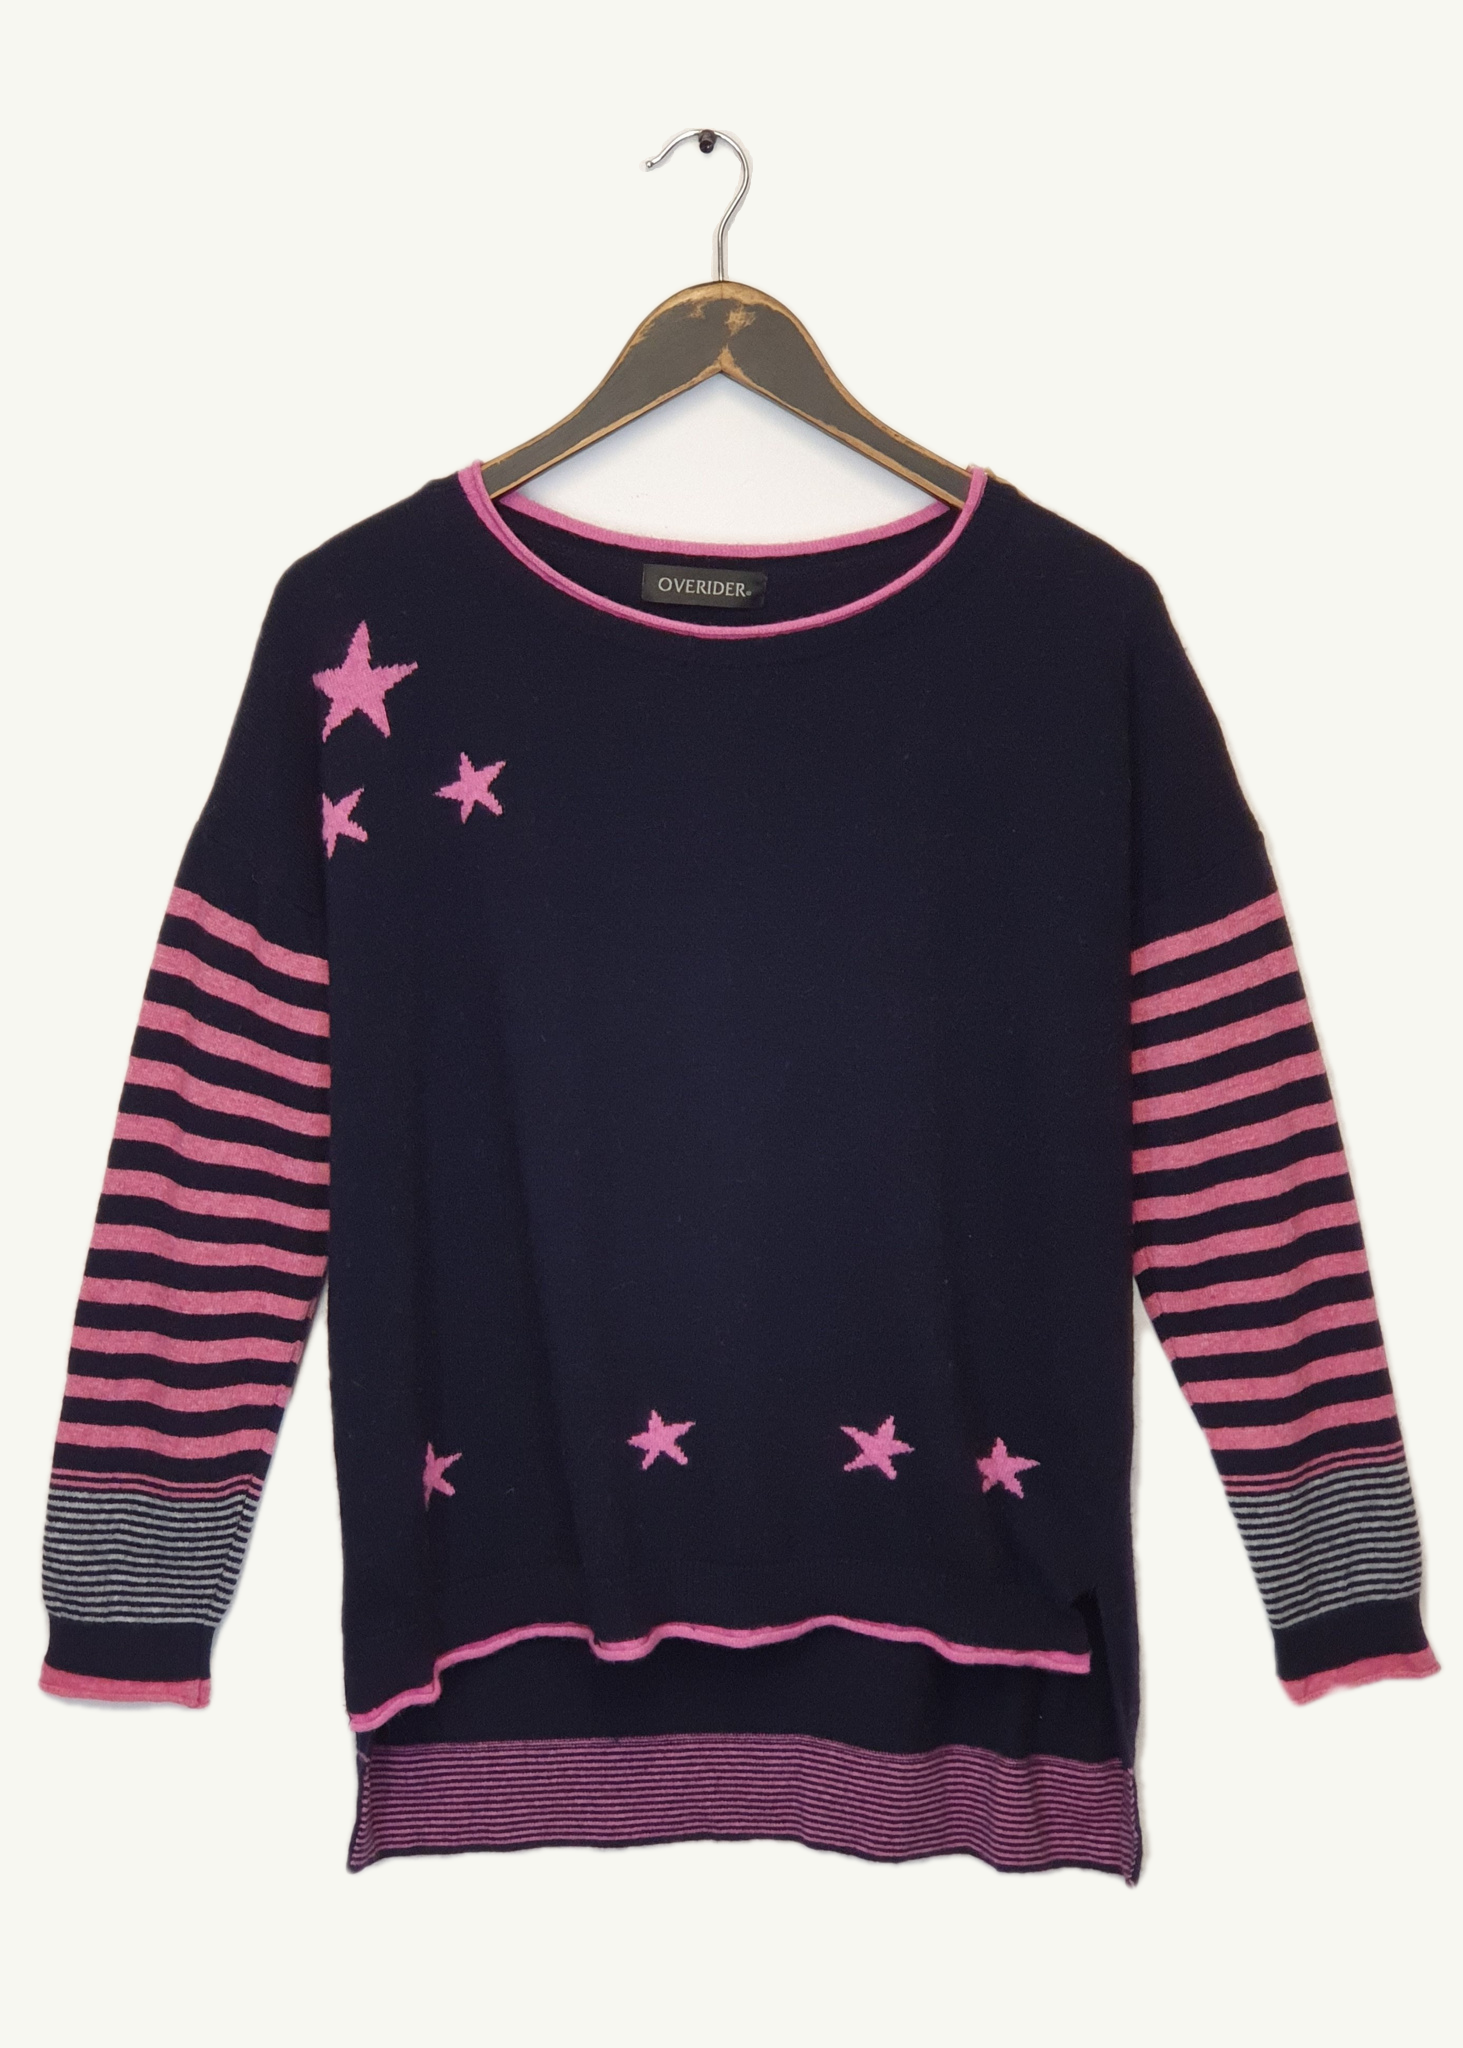 LIANA - Stars & Stripes Jumper - Navy / Fuscia